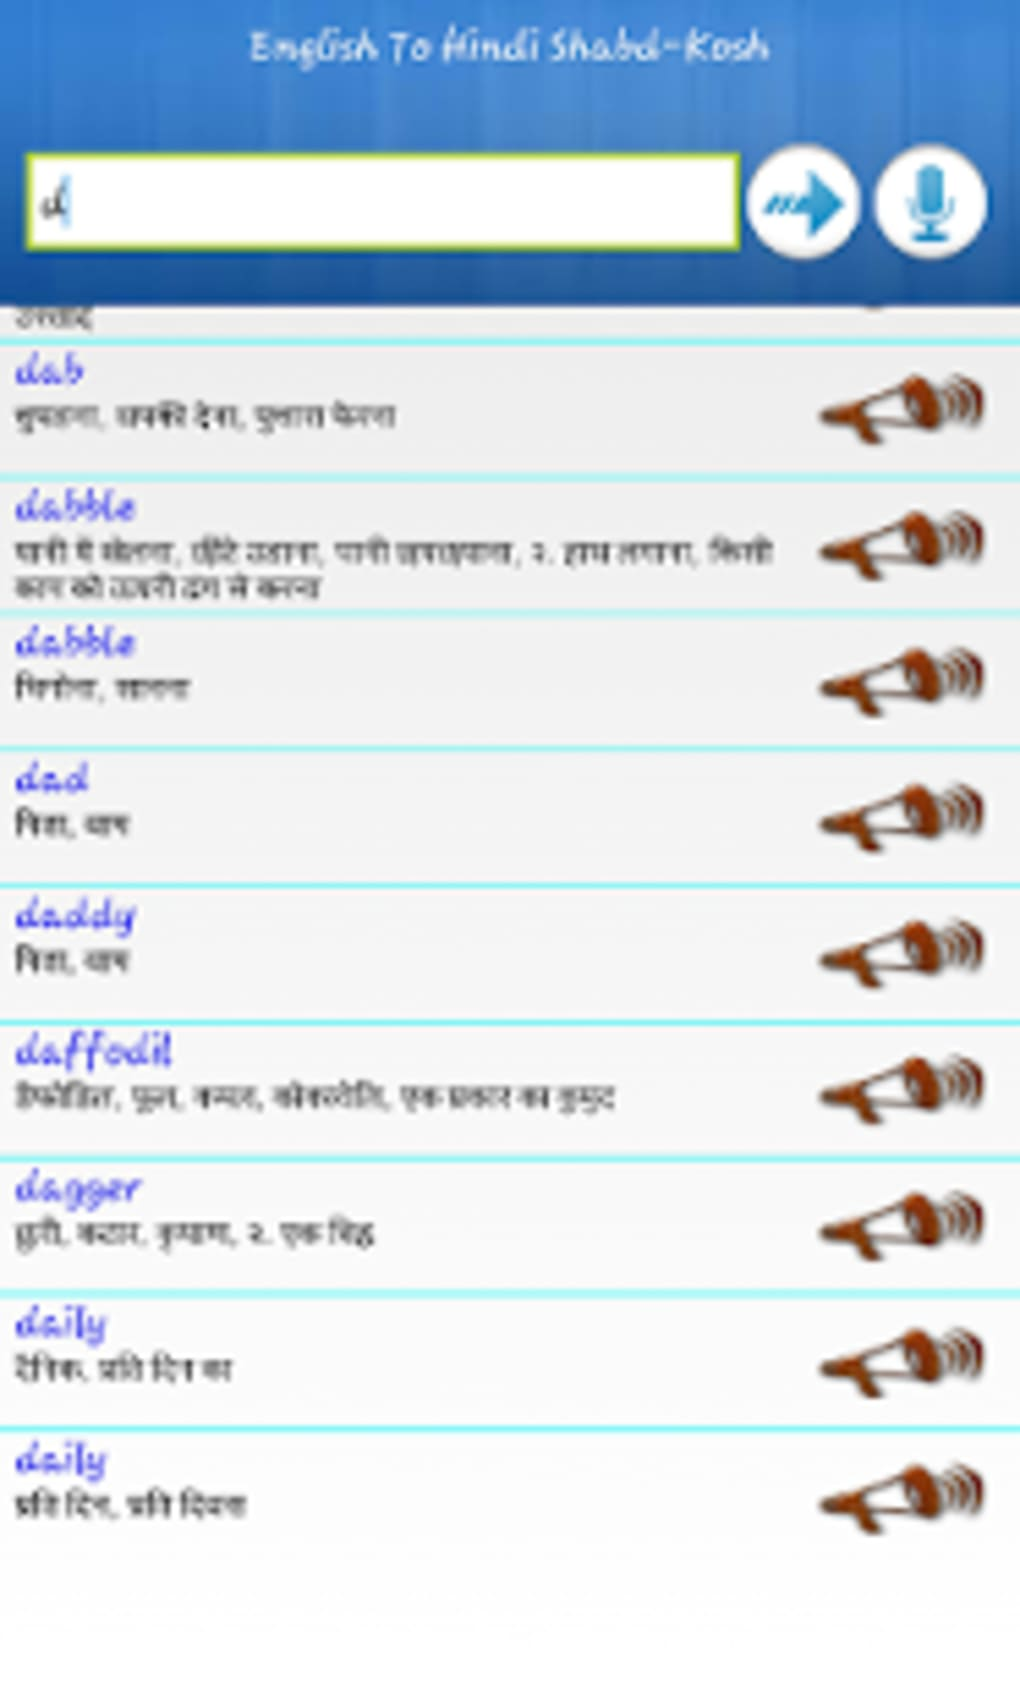 ShabdKosh Offline Dictionary for Android - Download